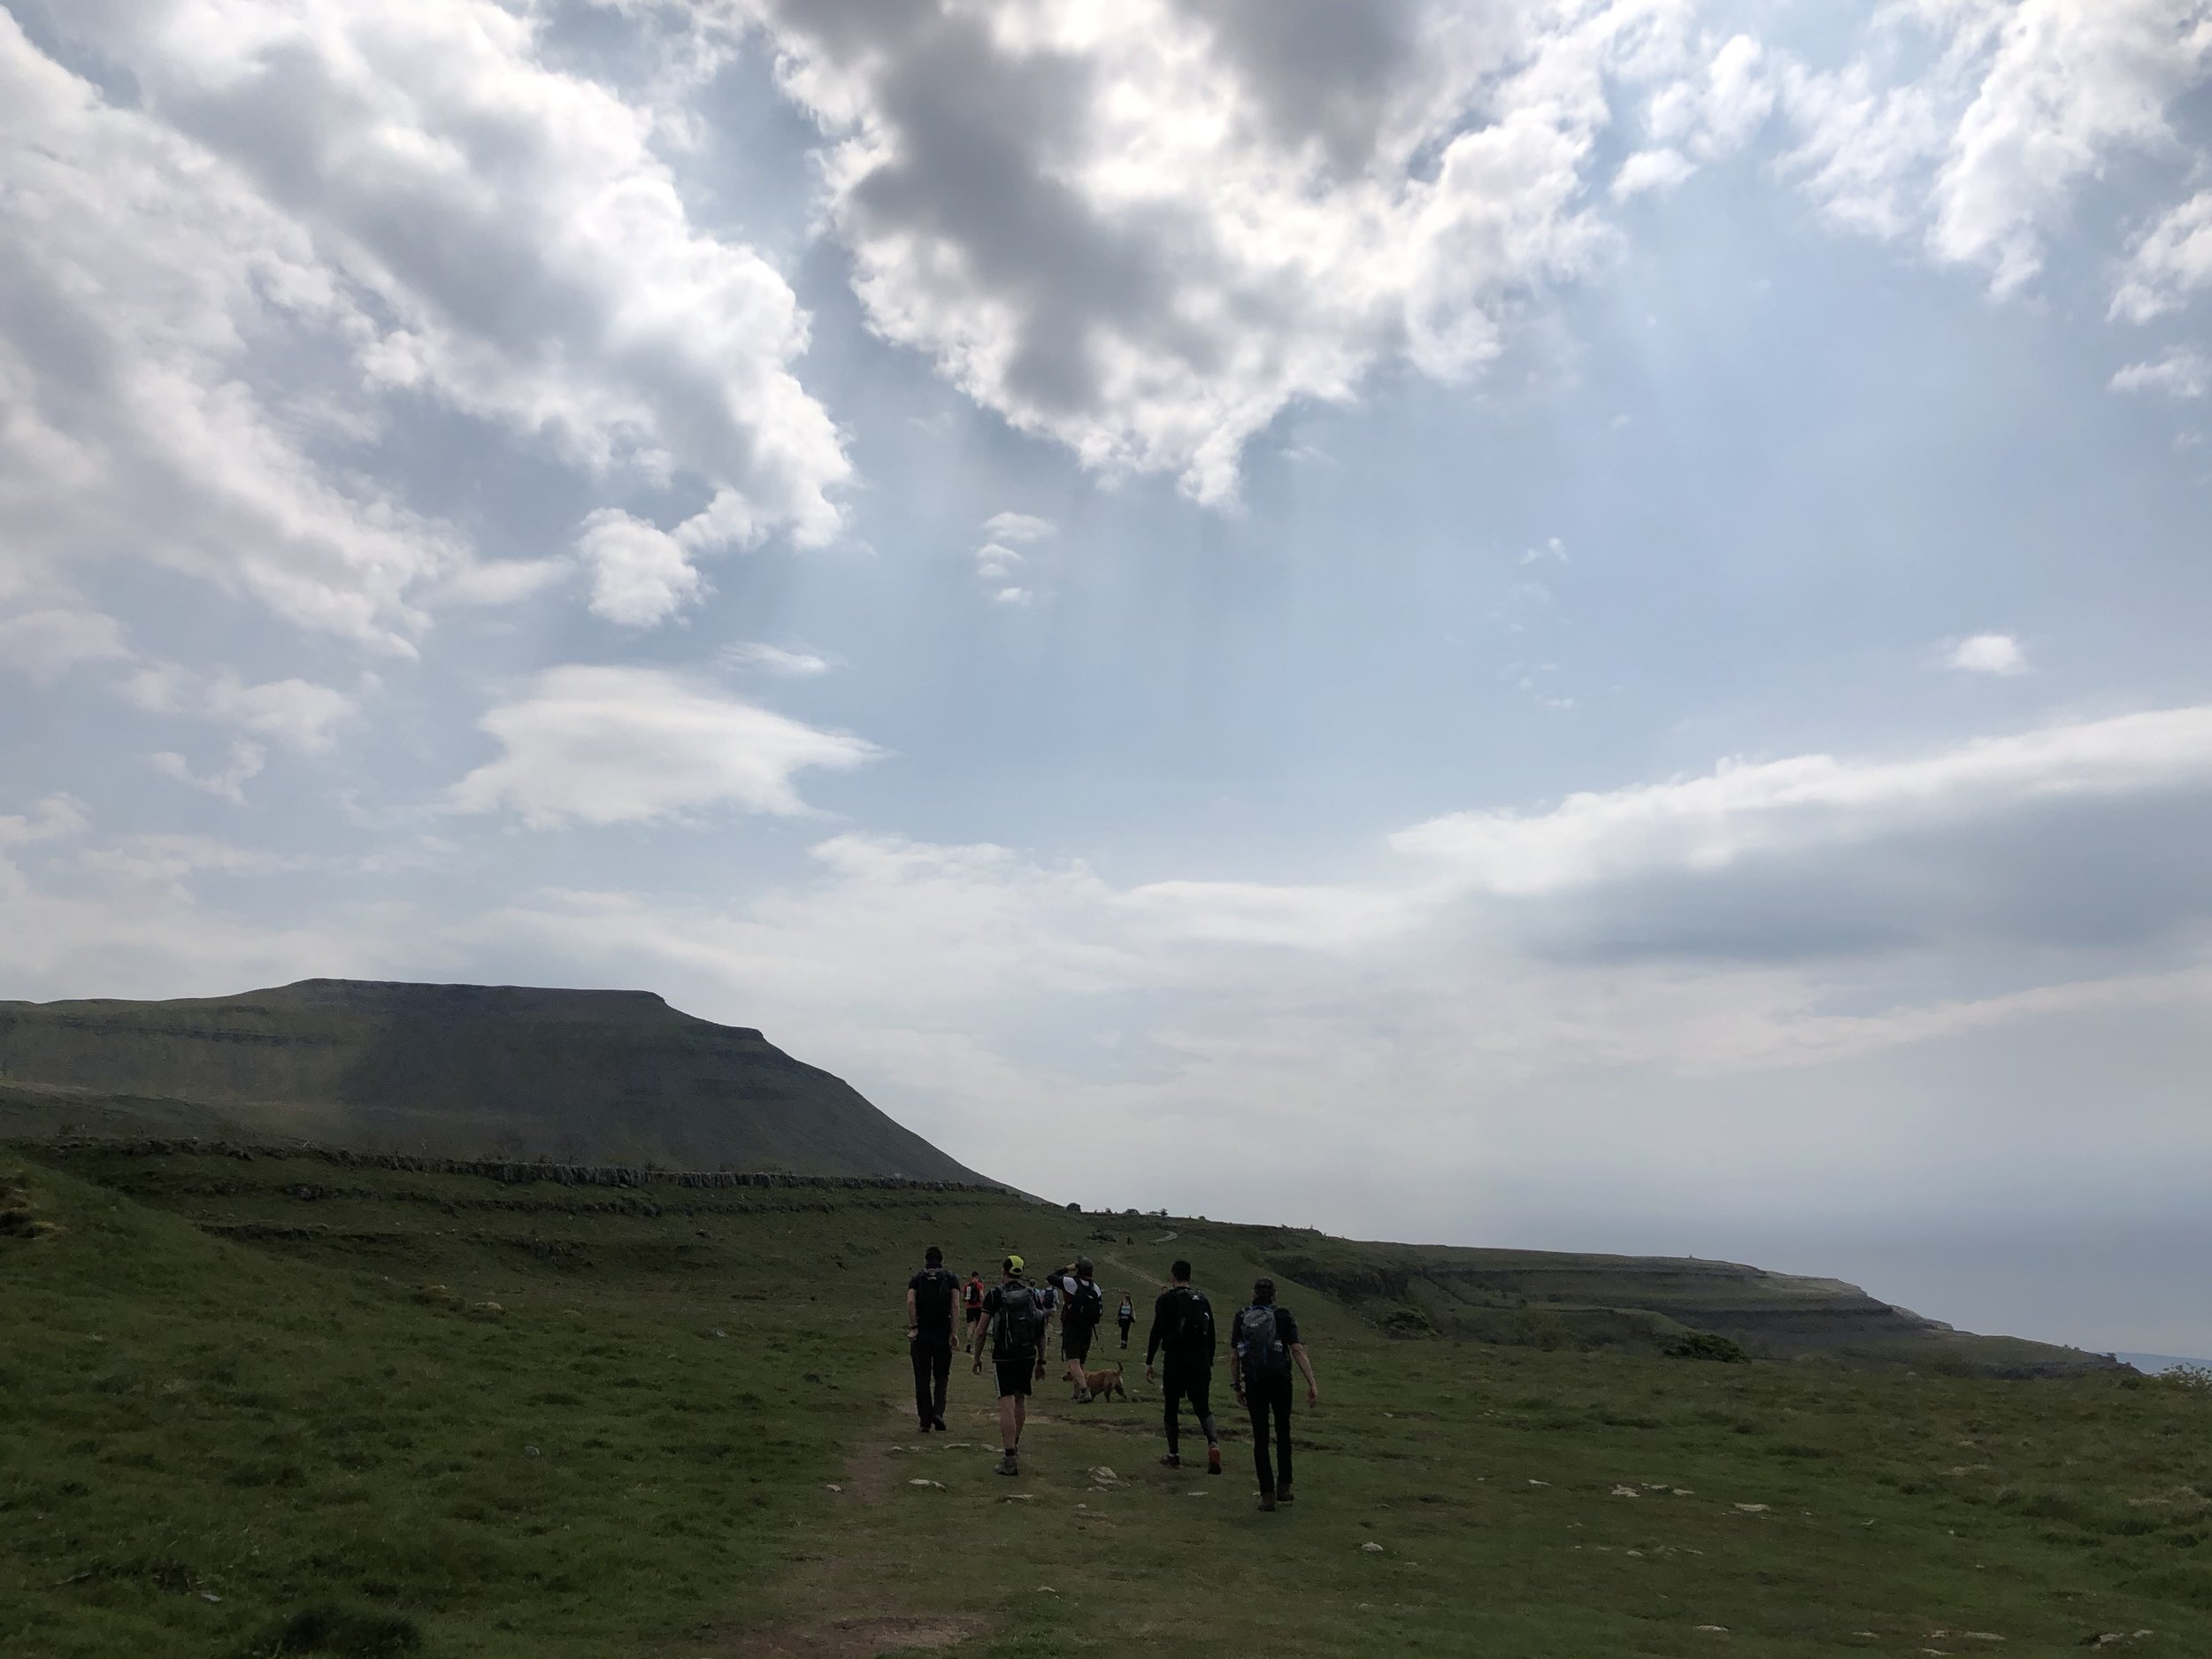 The team approaching Ingleborough - the final ascent.